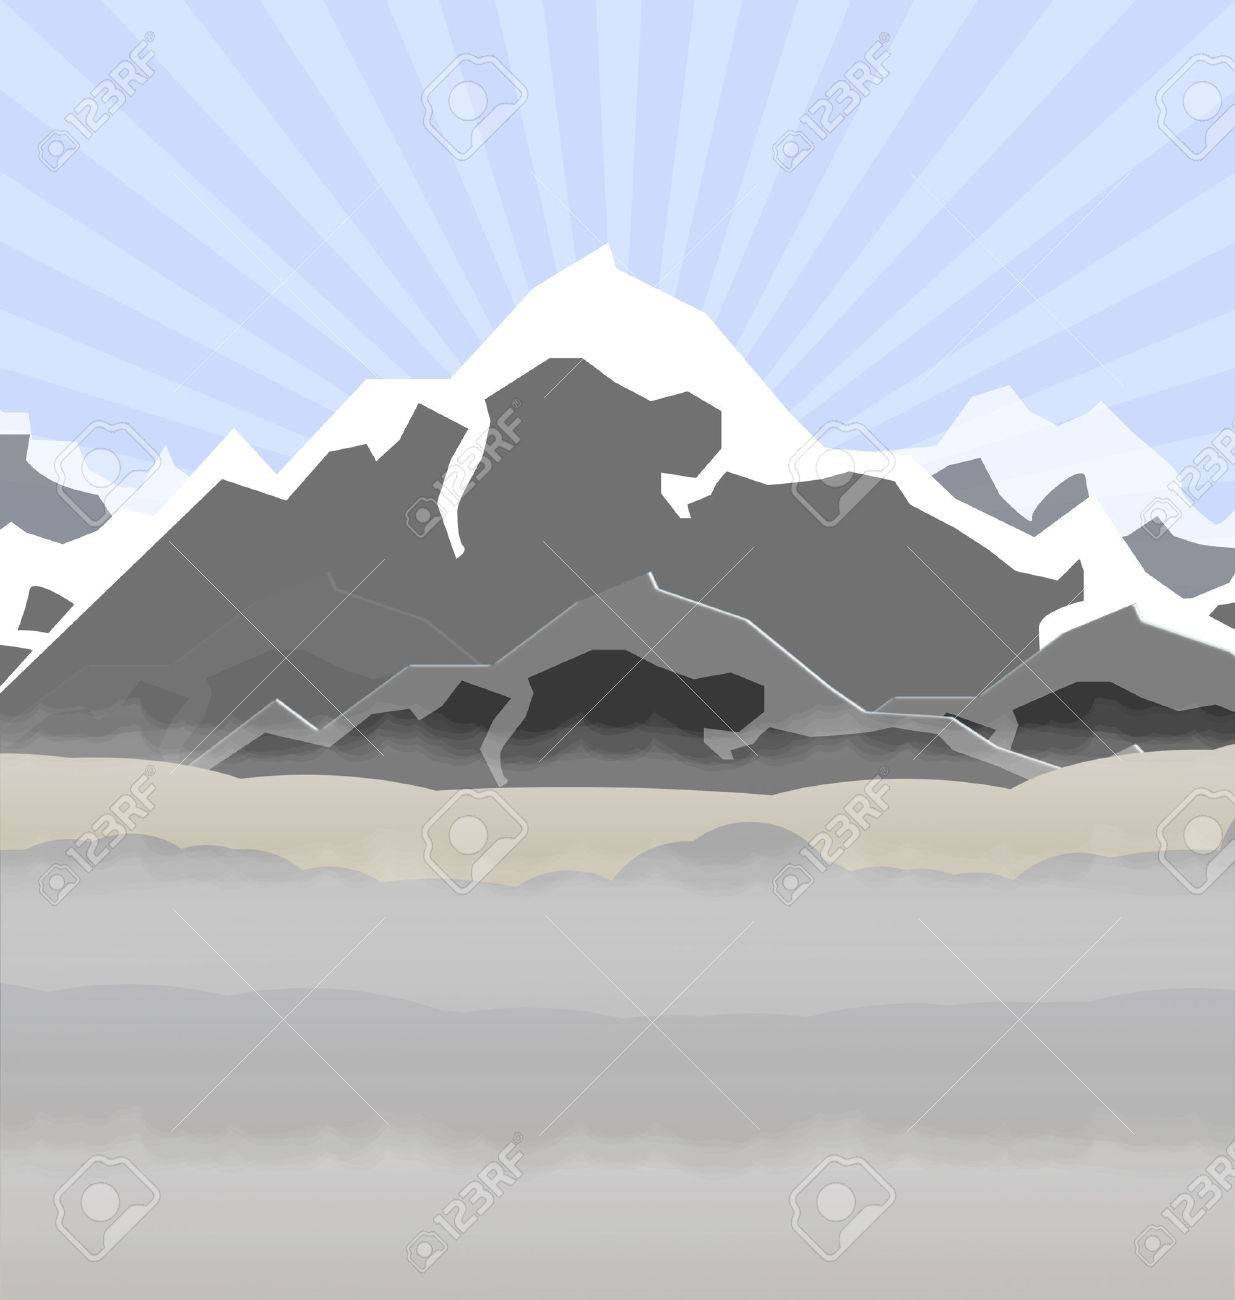 illustration of high mountains in fog Stock Vector - 7175877